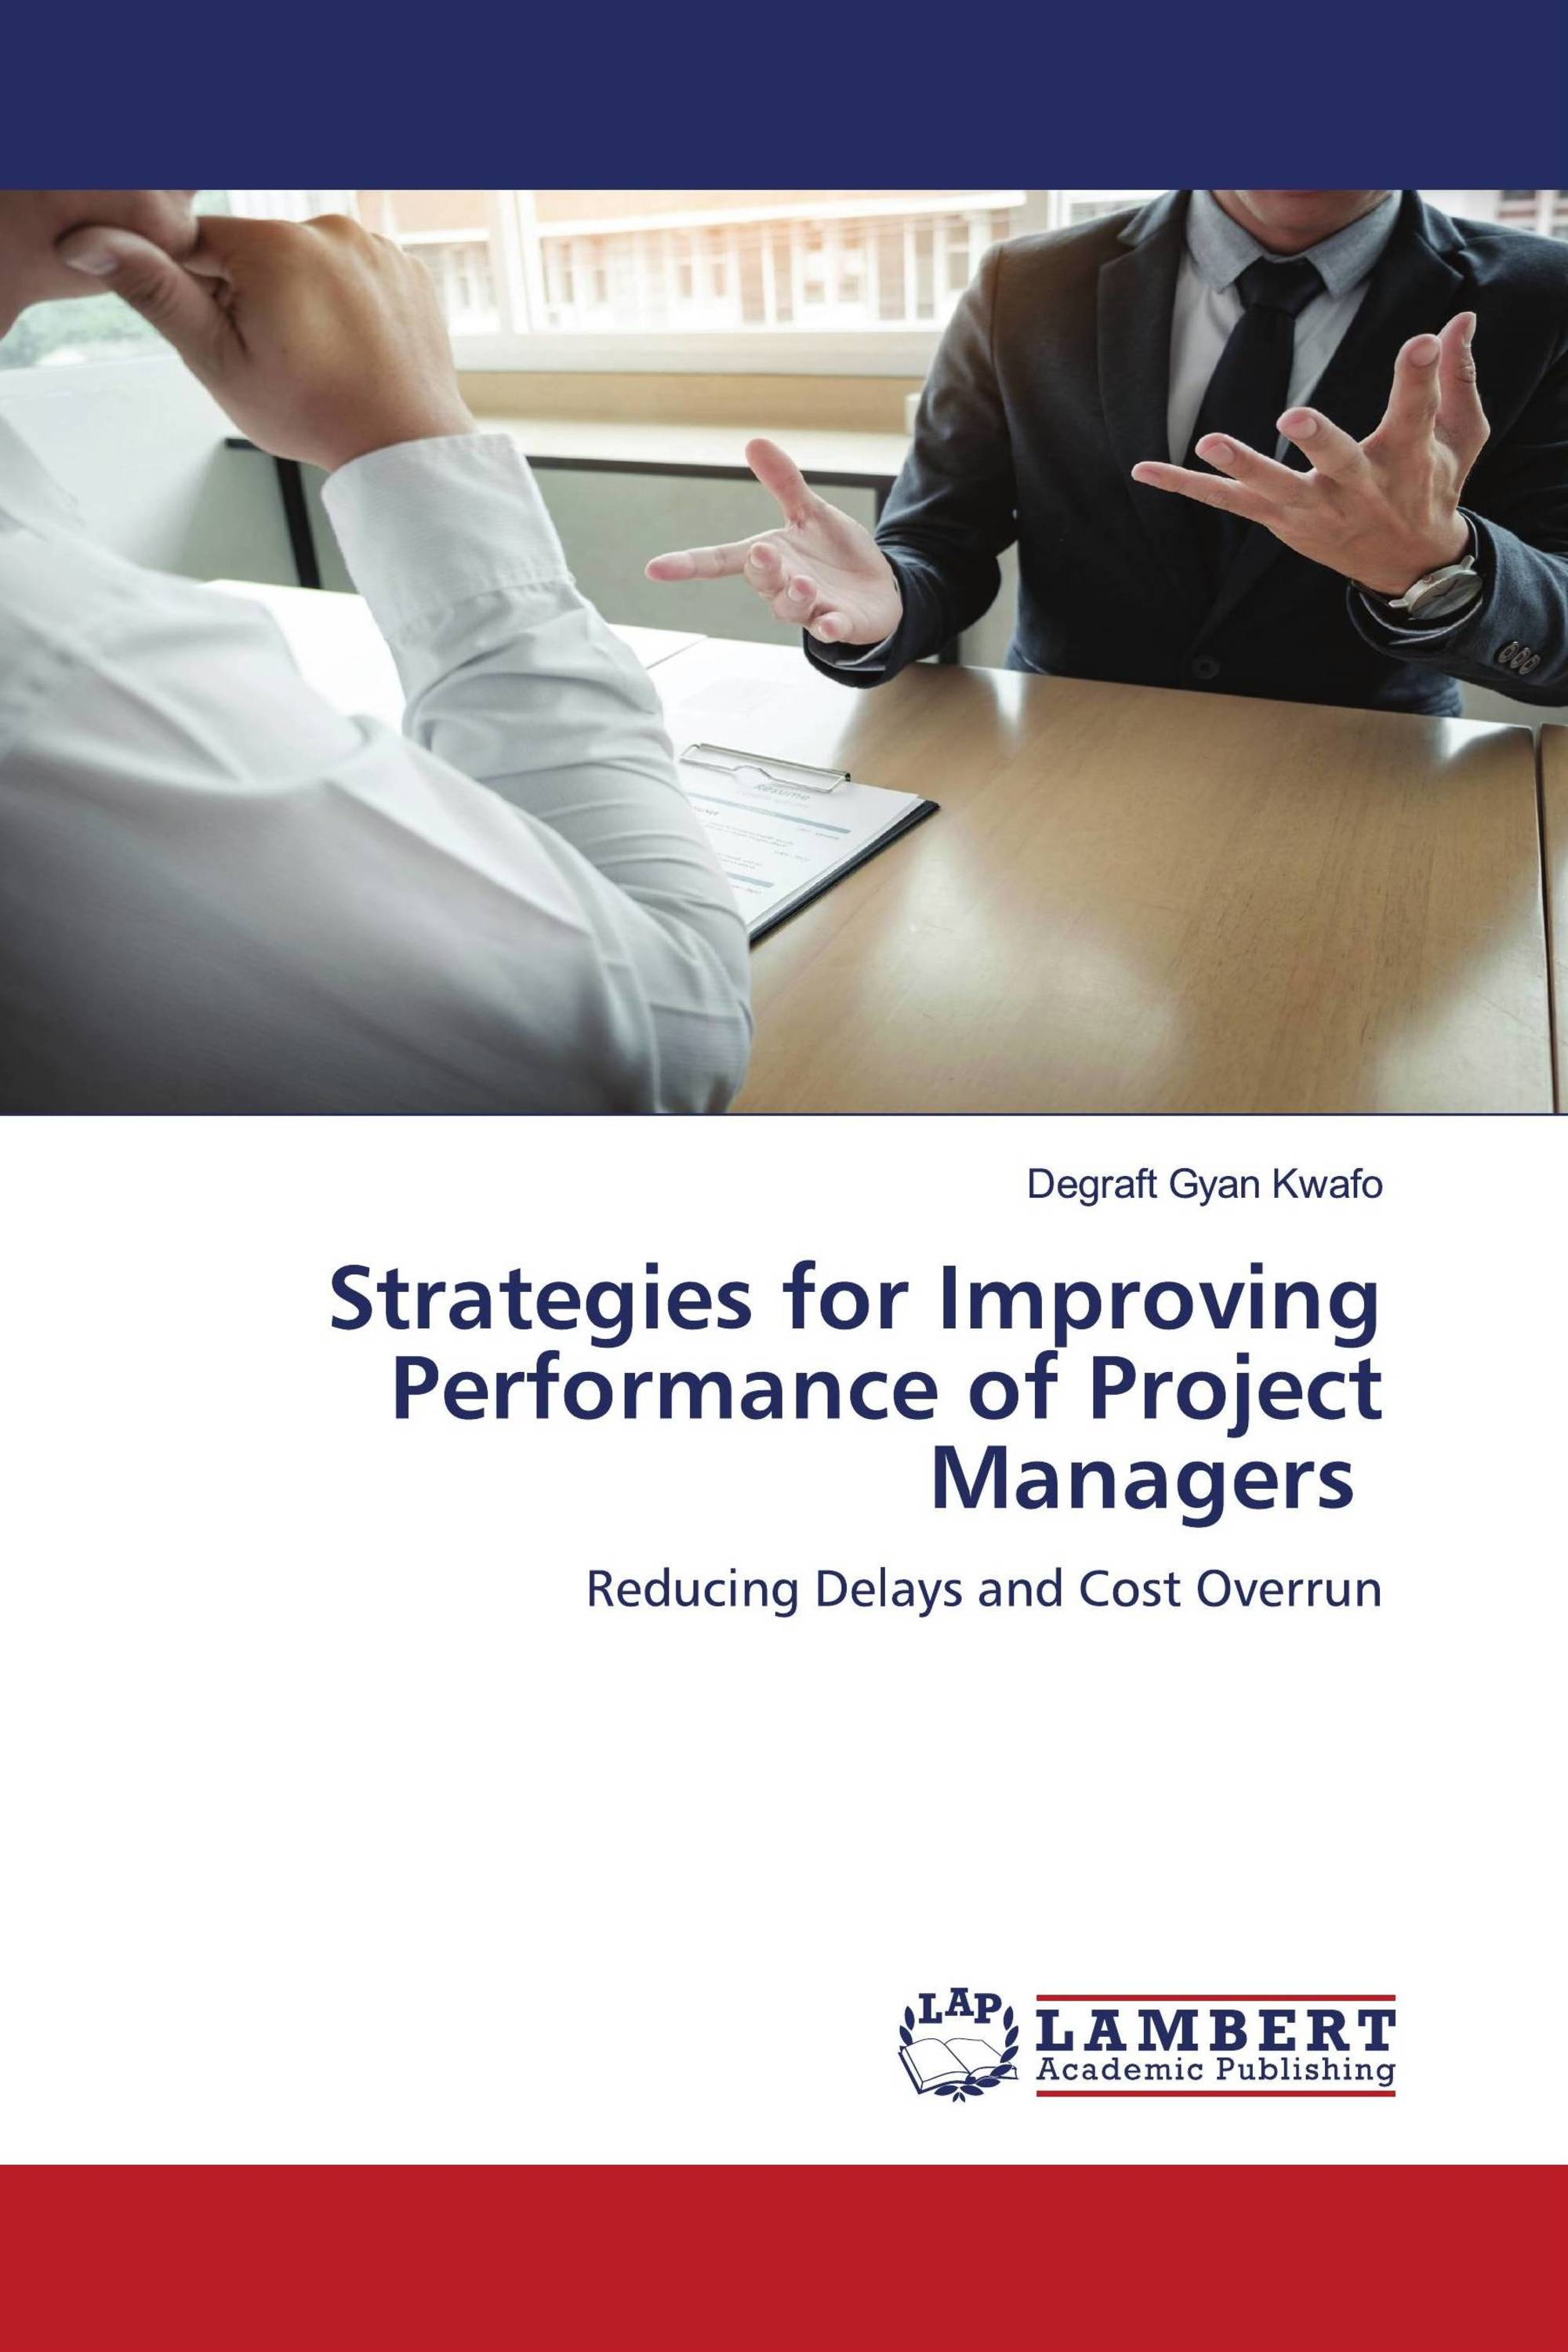 Strategies for Improving Performance of Project Managers